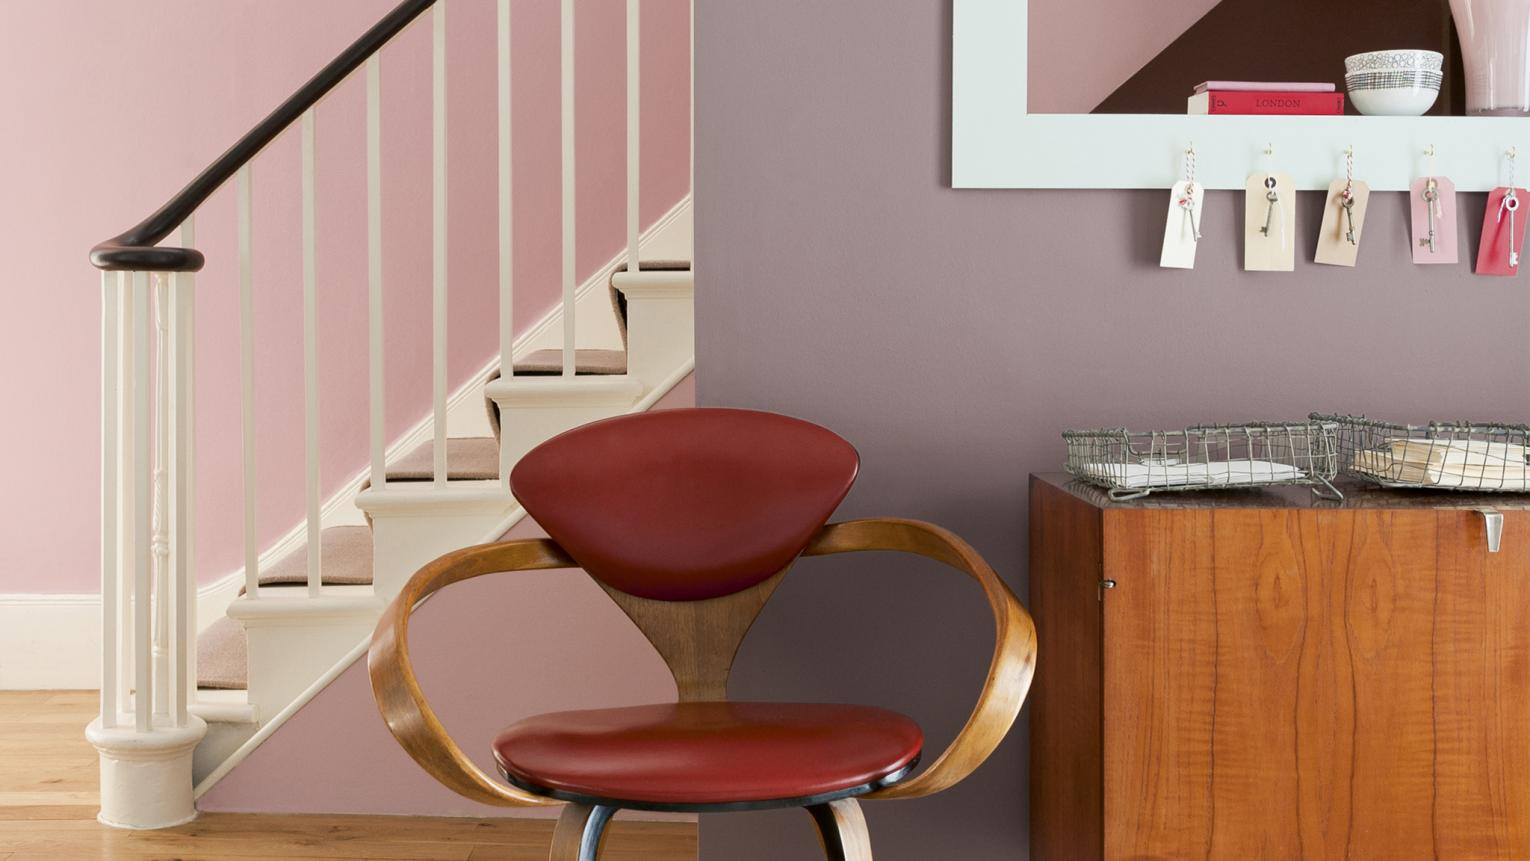 Soft pinks and purples combined with retro furniture gives a nostalgic feel to any room.